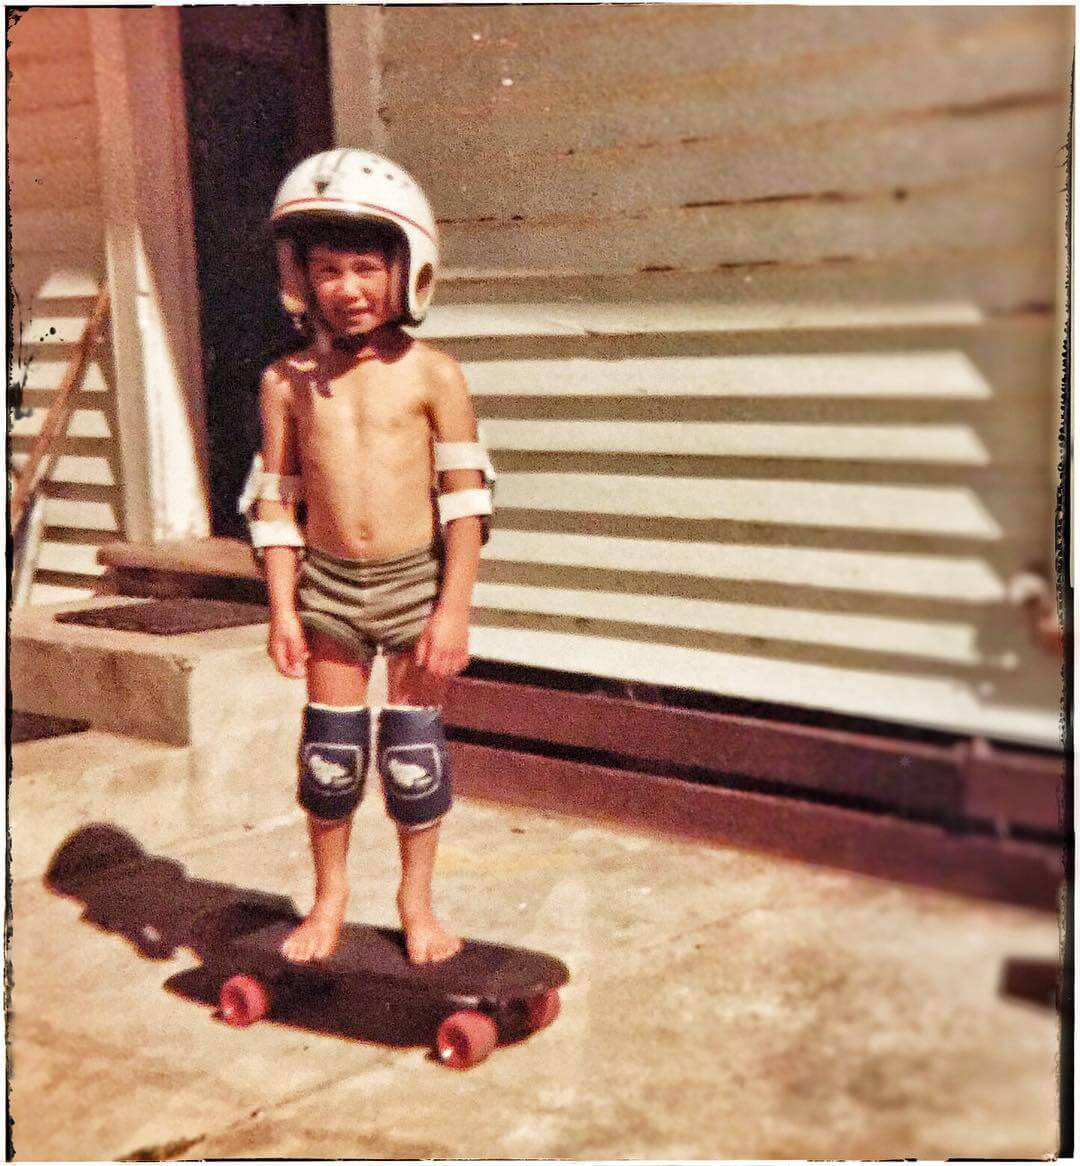 Sk8 or die! My old man made this board from roller skate wheels & some flooring. 1982 was so rad #1982